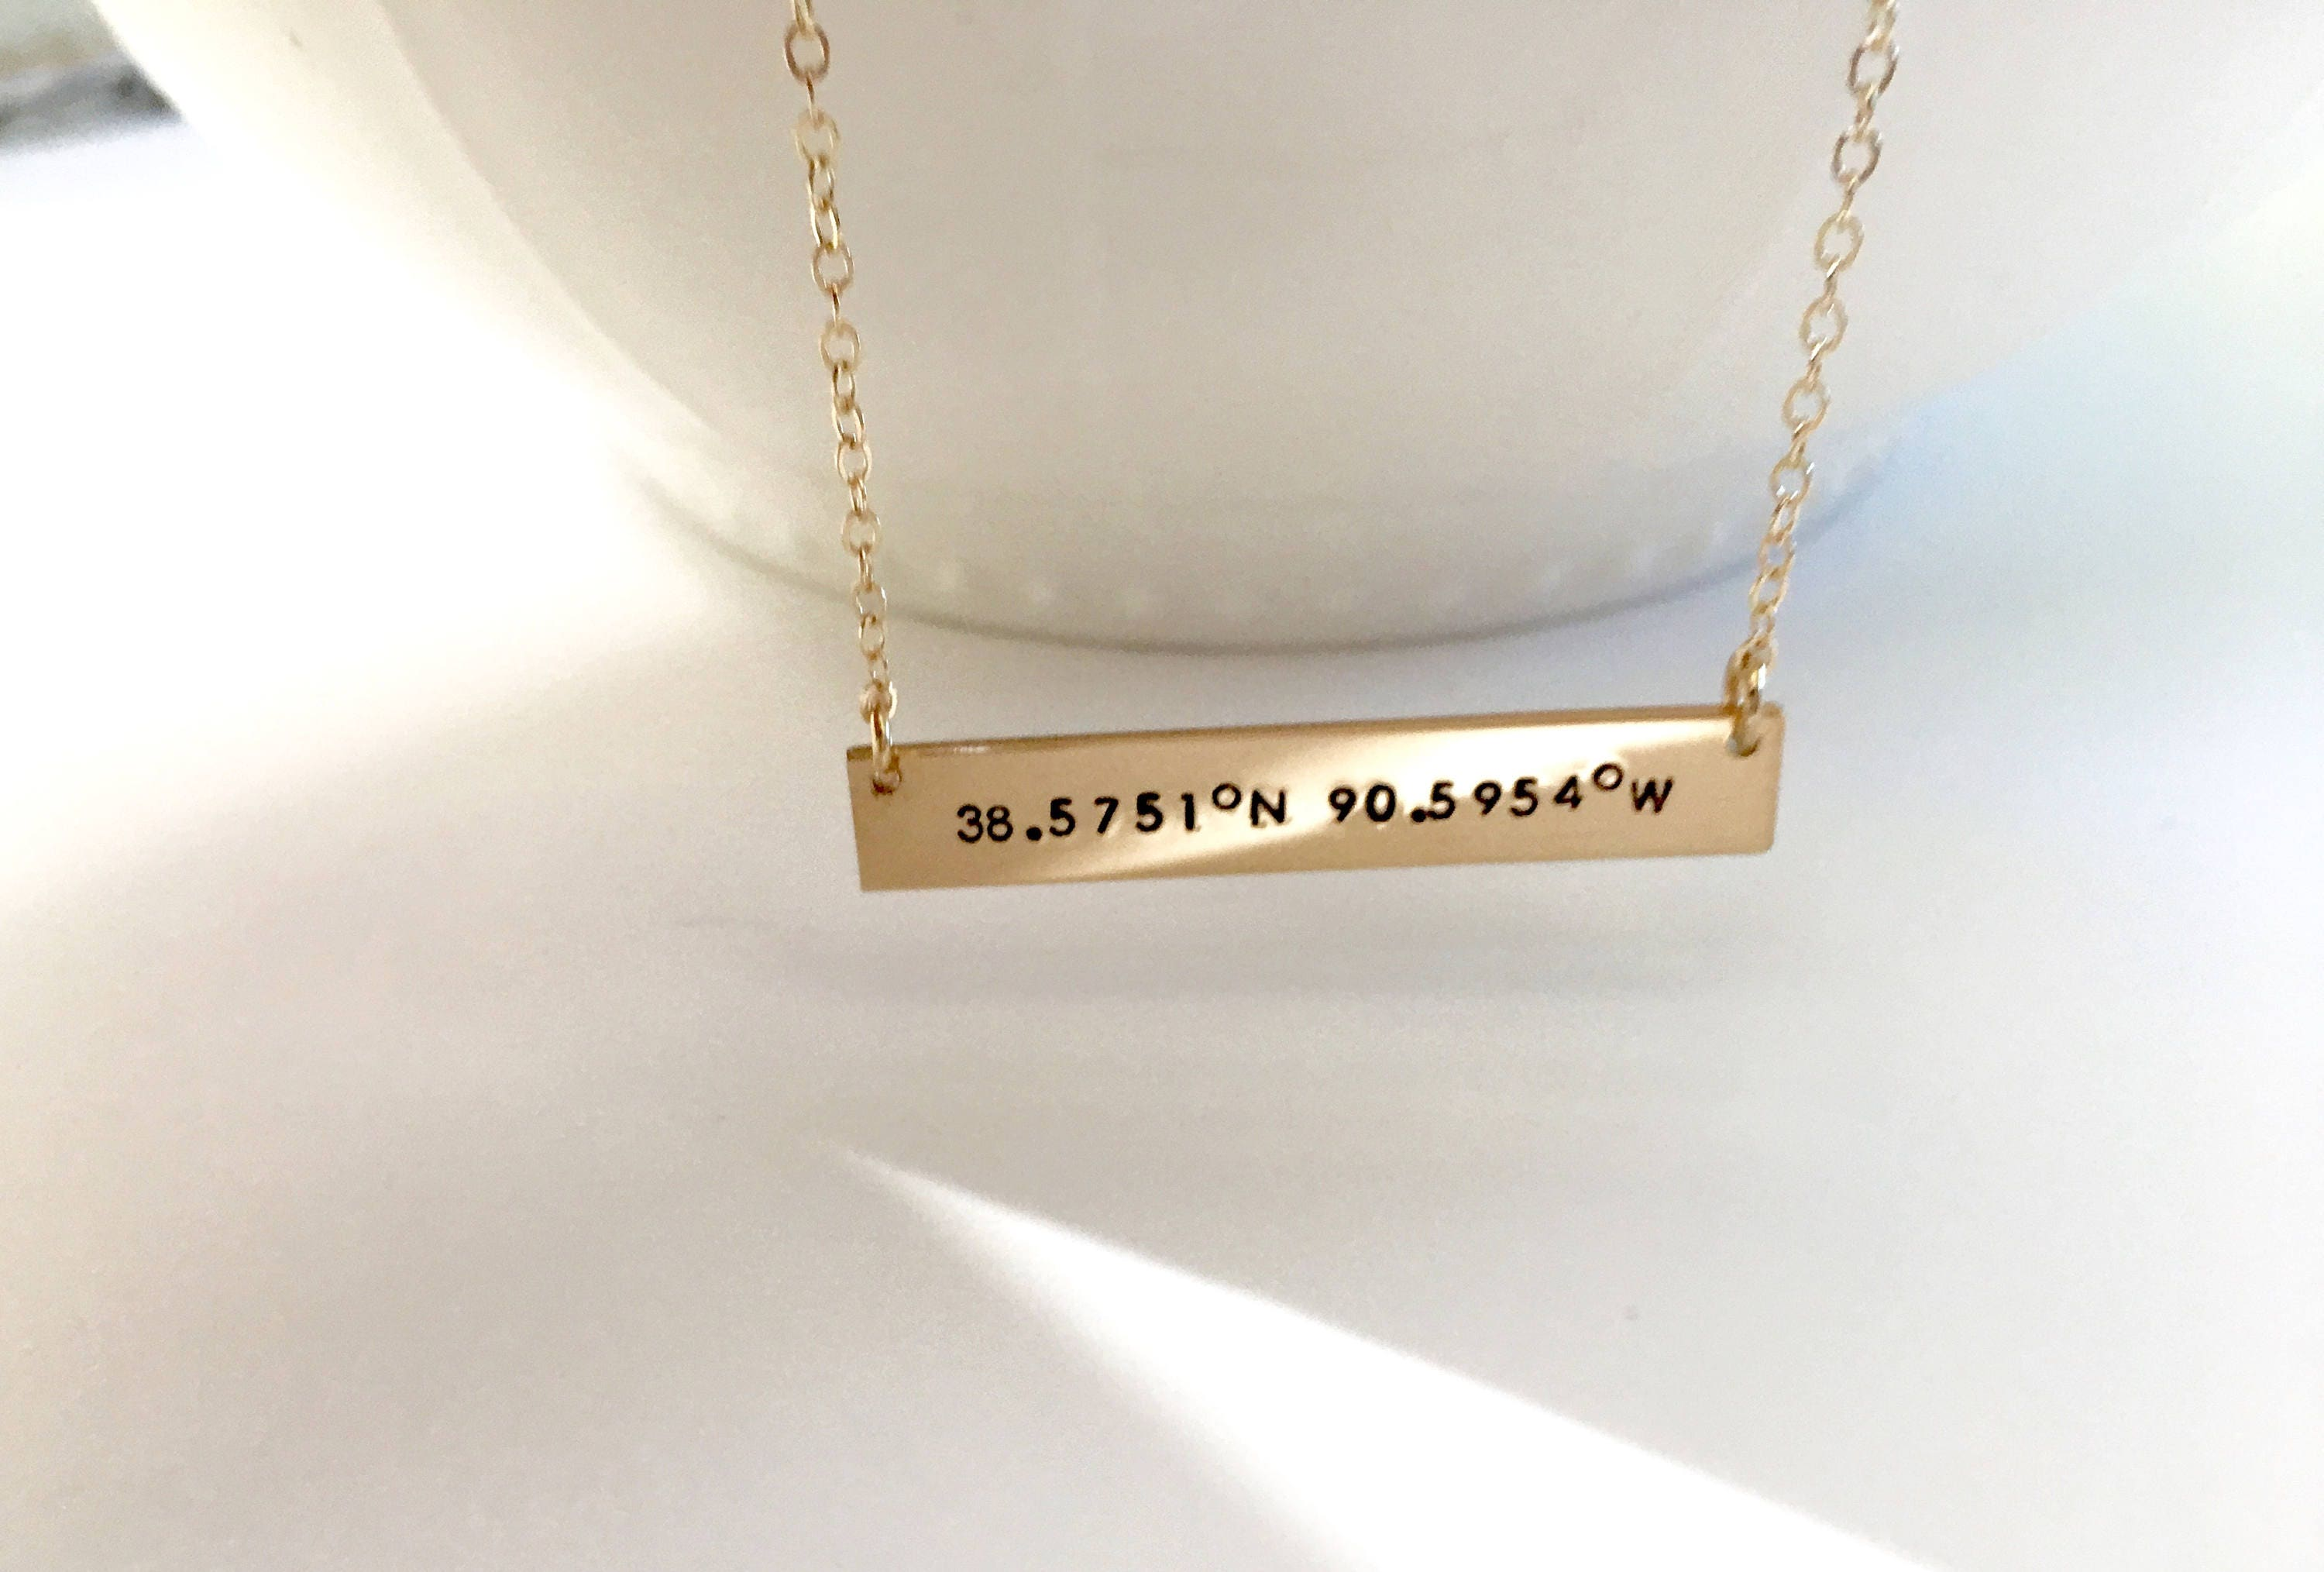 hammered necklaces coordinate personalized gold handstamped jewelry handmade bar necklace